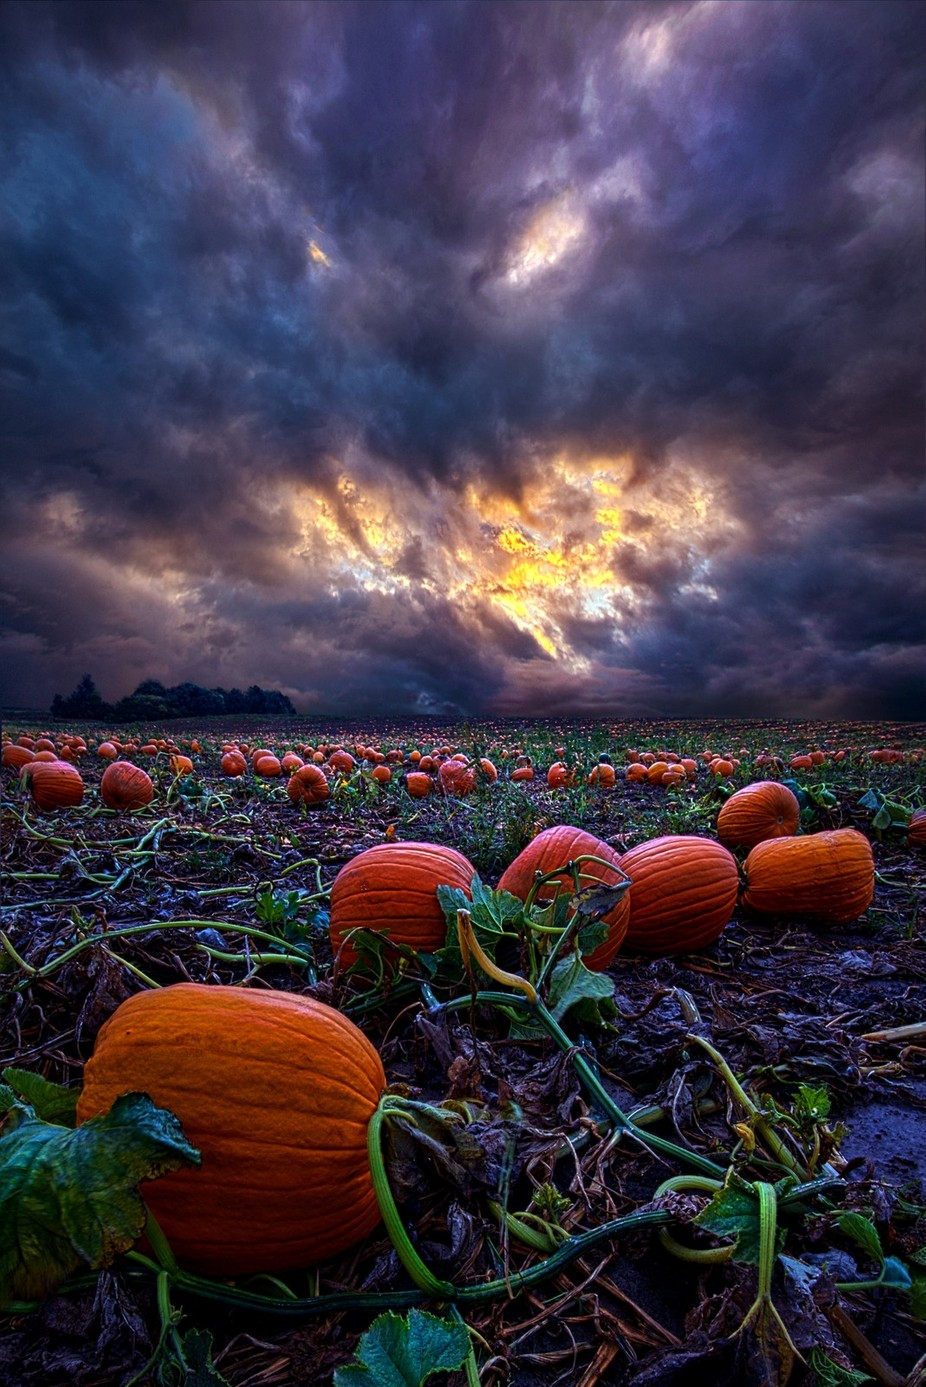 Halloween is Near by phil1 - Subjects On The Ground Photo Contest